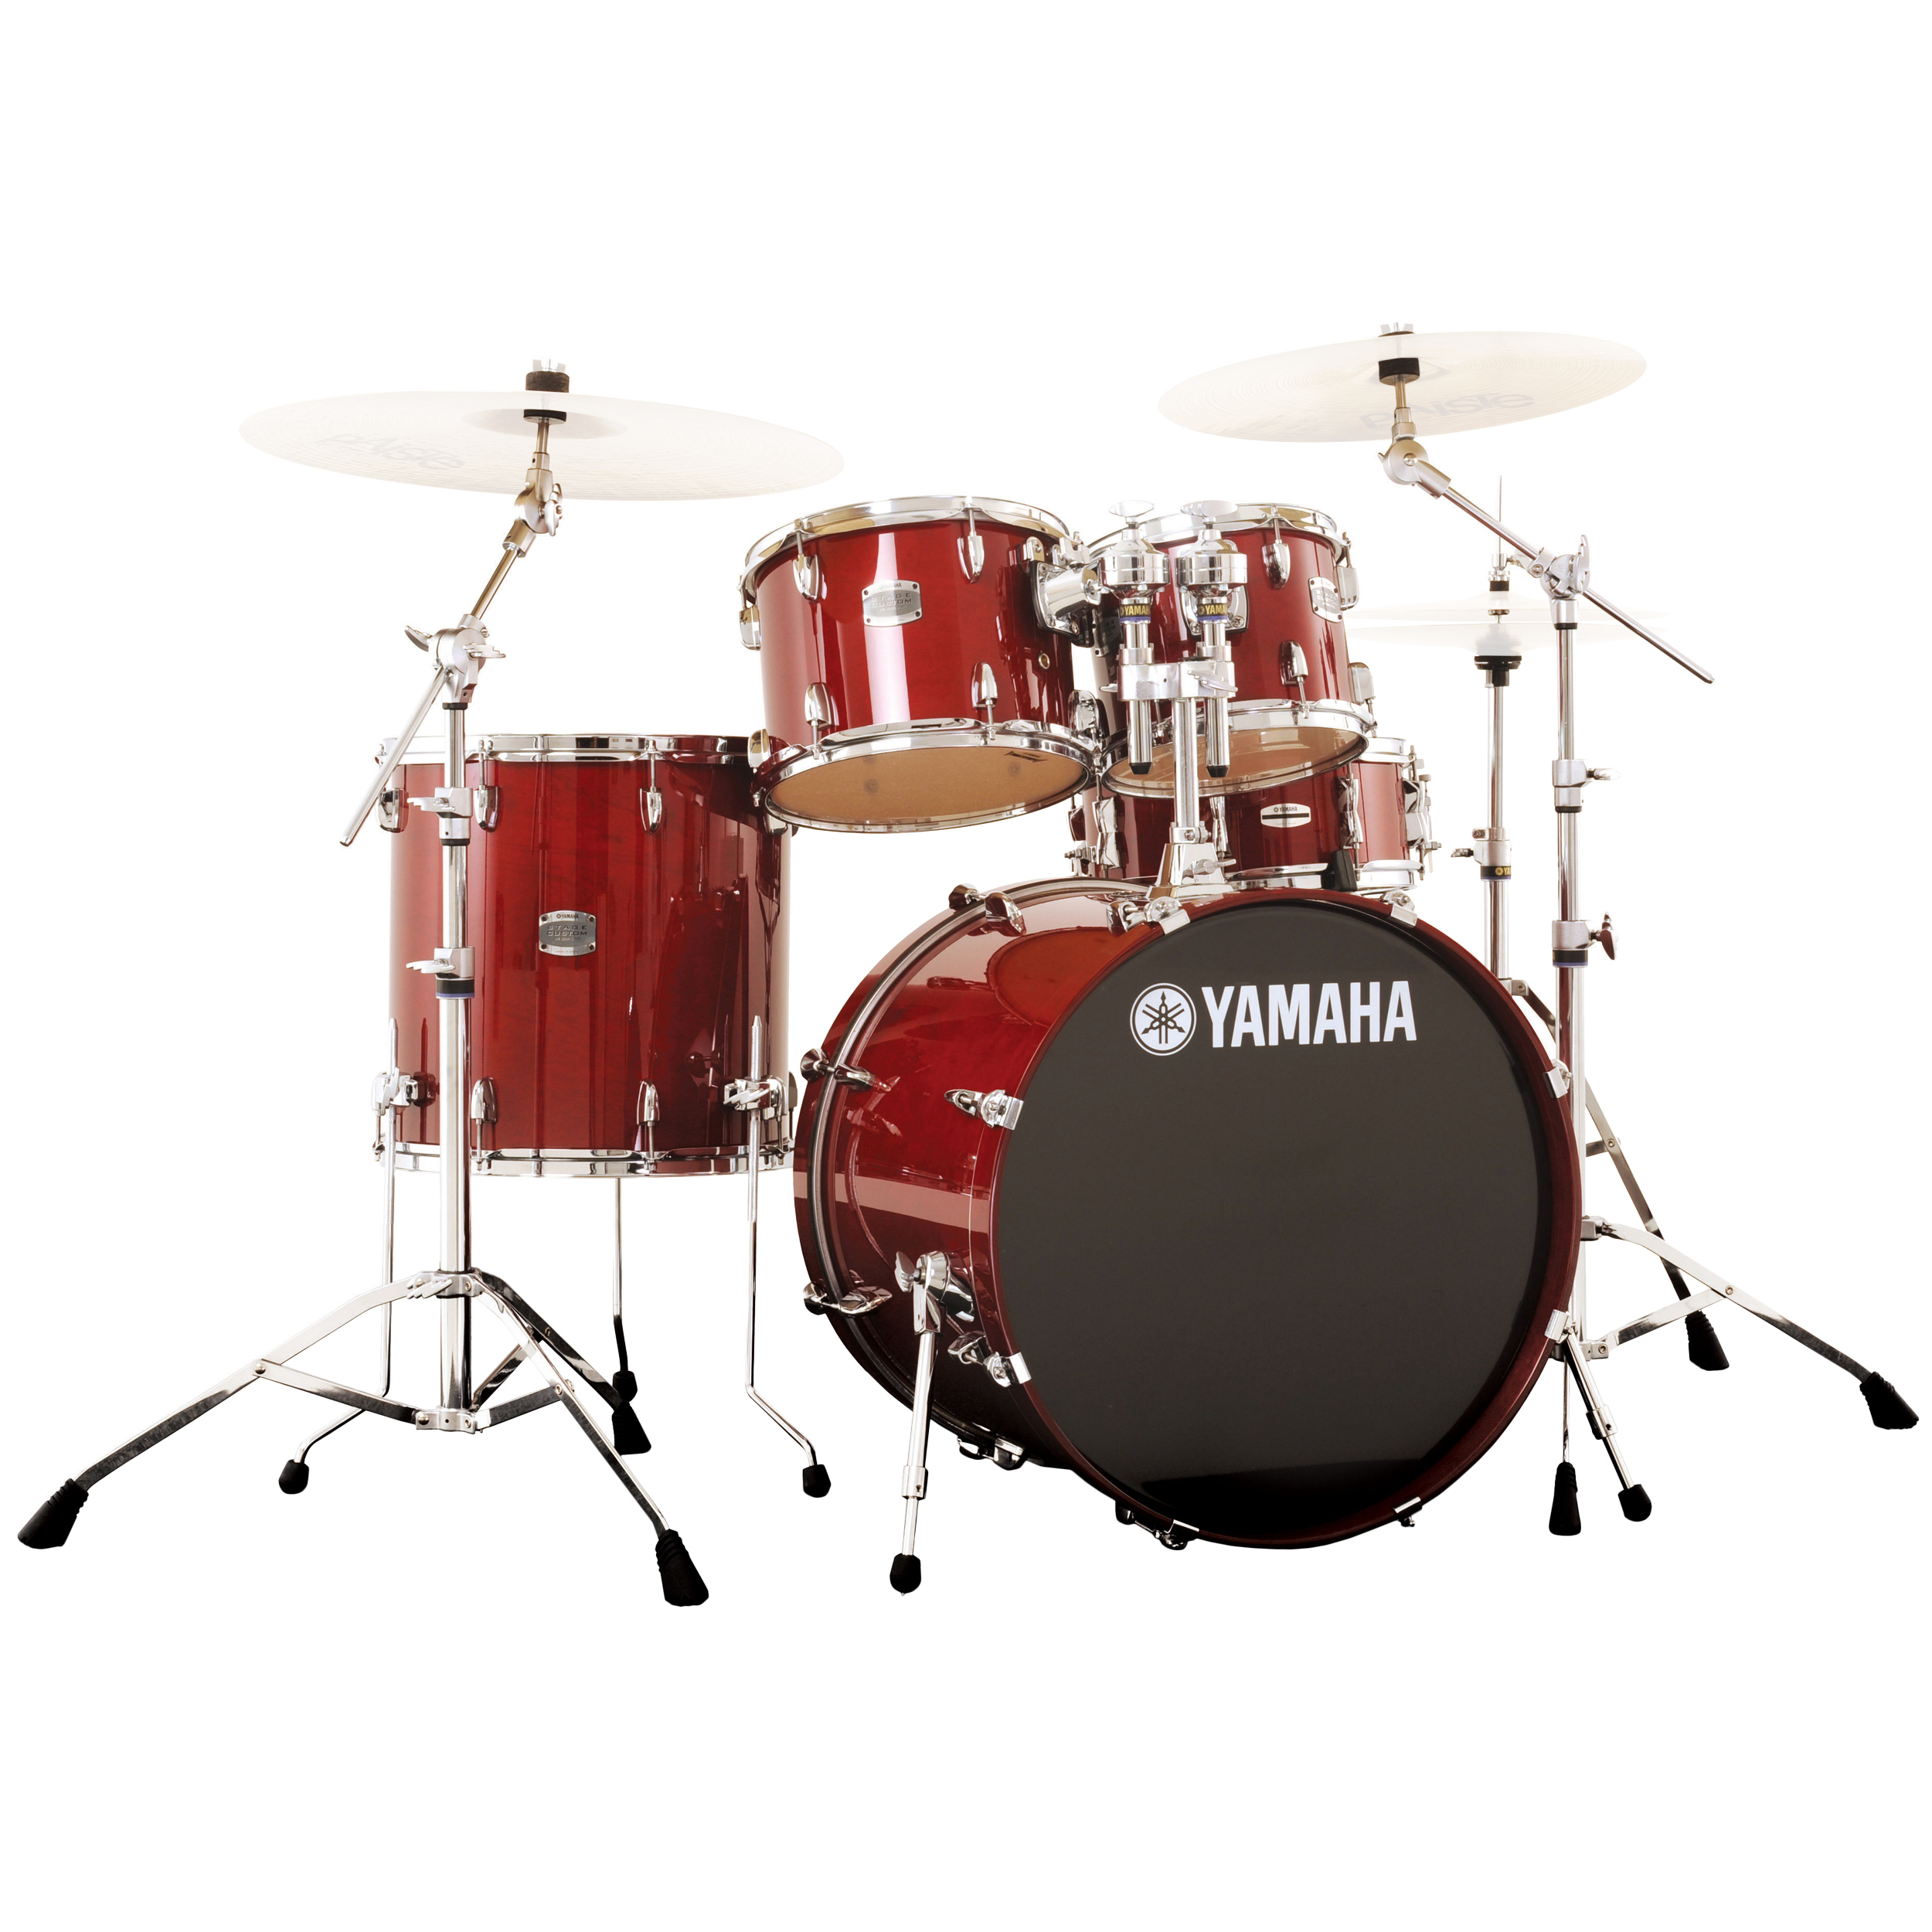 "Yamaha Stage Custom 5-Piece Rock Drum Set with HW-680W Hardware Pack (20"" Bass, 10/12/14"" Toms, 14"" Snare)"